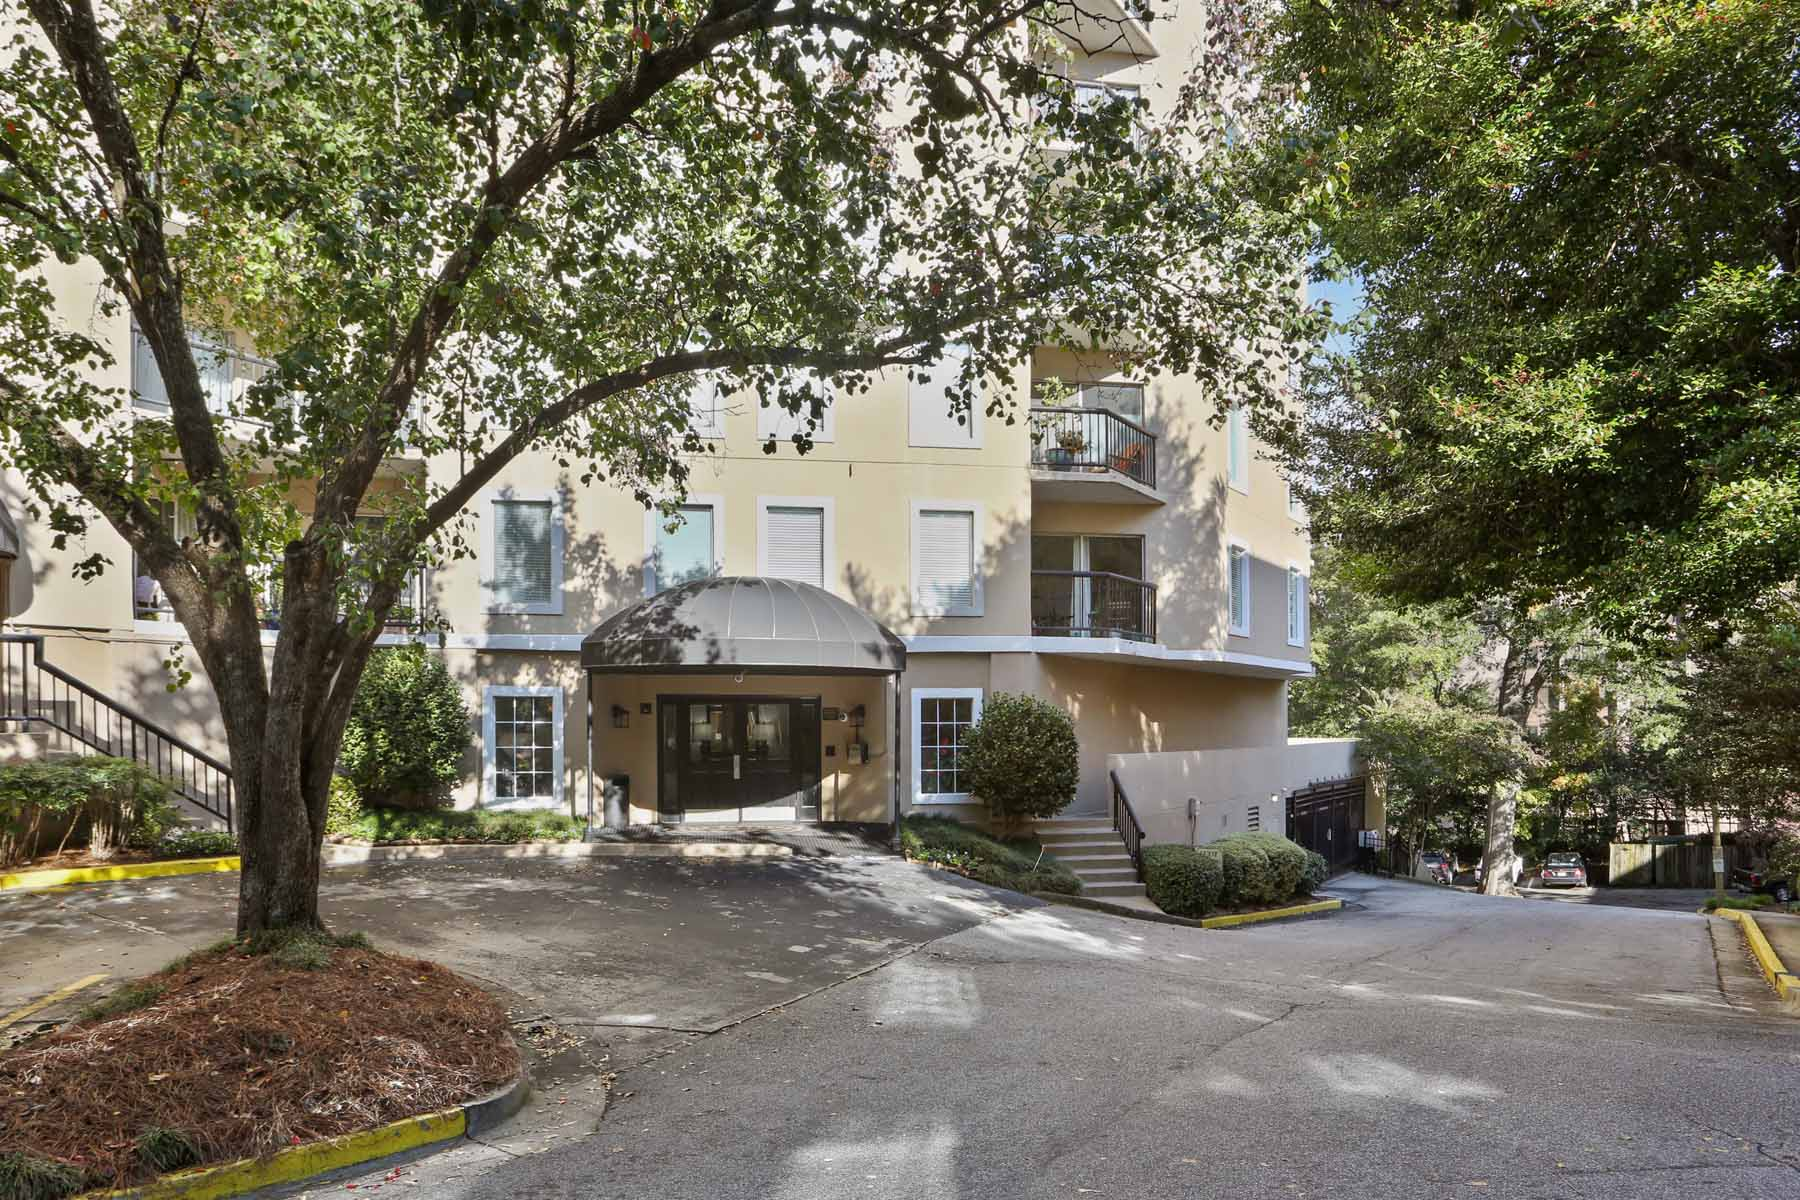 Condominium for Sale at Fabulous Buckhead Condo - Great Square Footage, Two Parking Spaces! 1 Biscayne Dr 501 Atlanta, Georgia 30309 United States